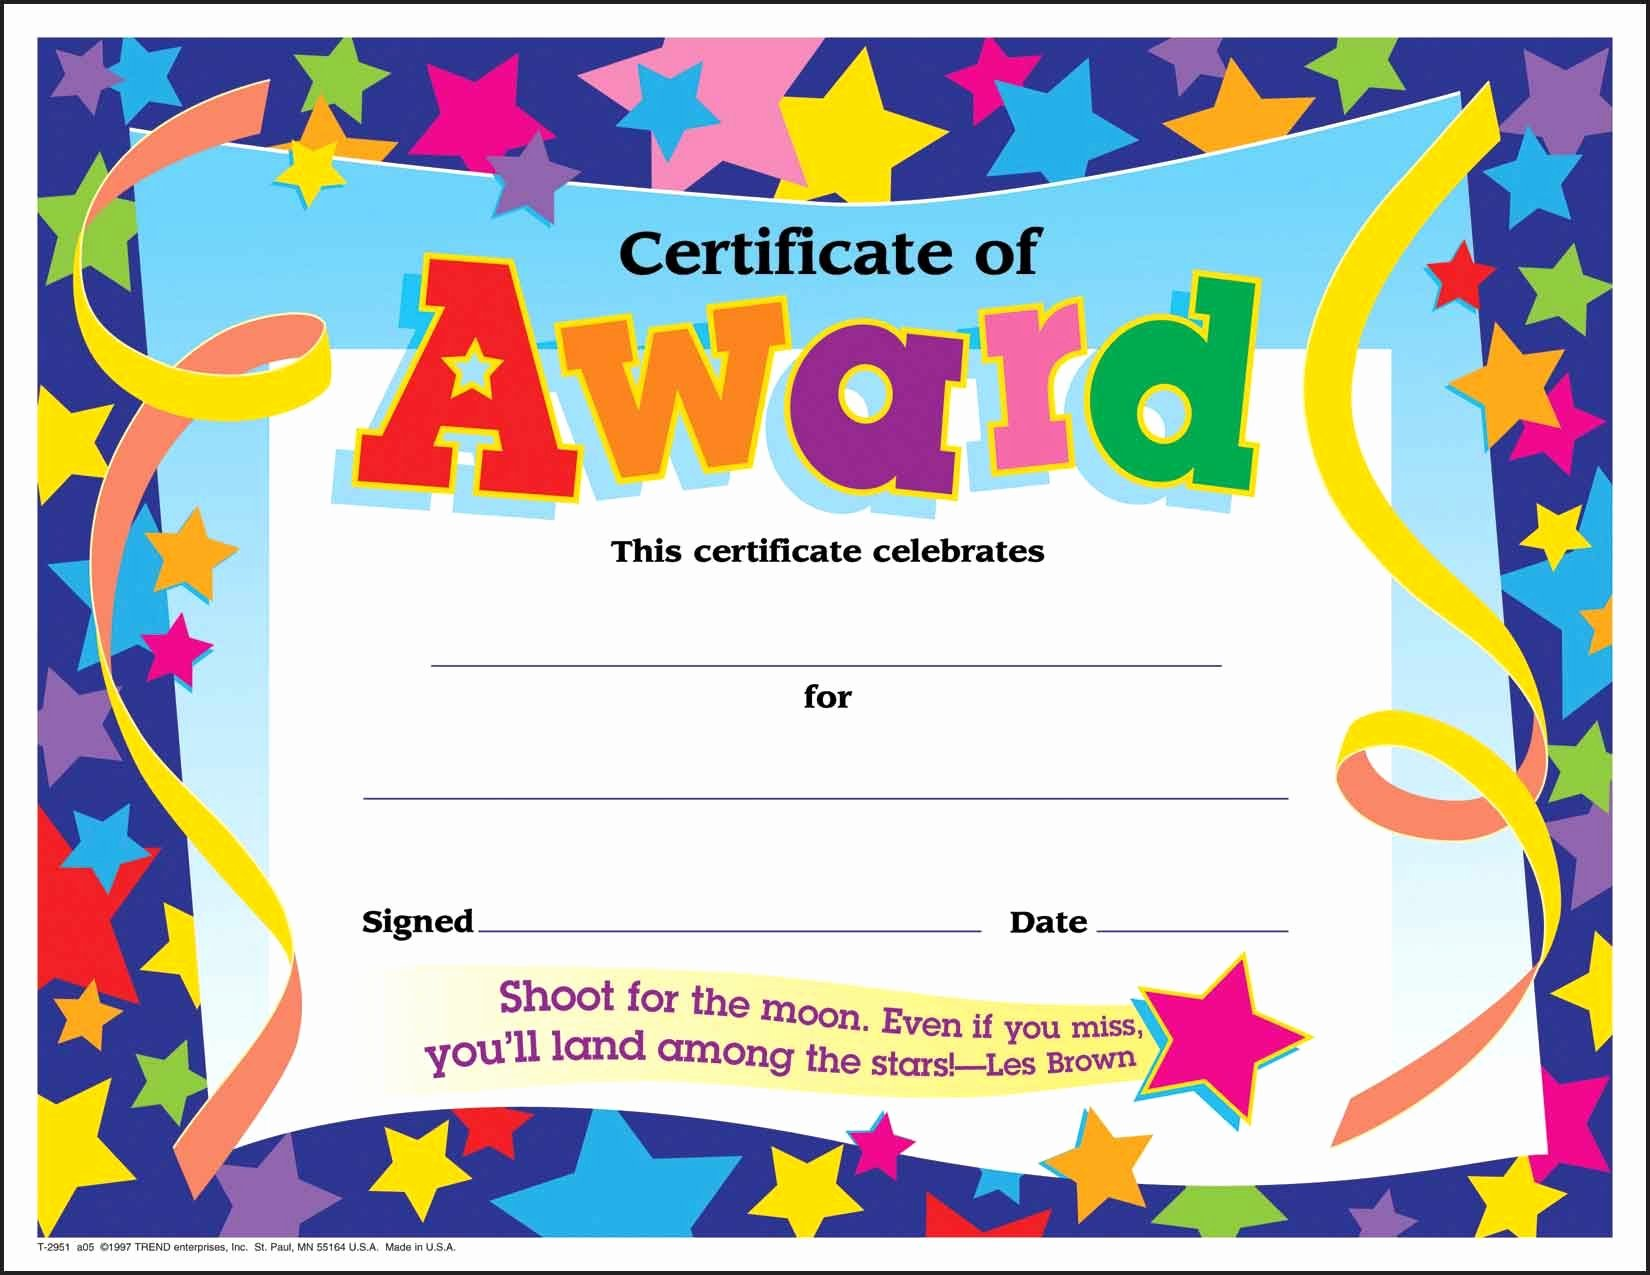 Awards Day Program Template Awesome Certificate Template for Kids Free Certificate Templates